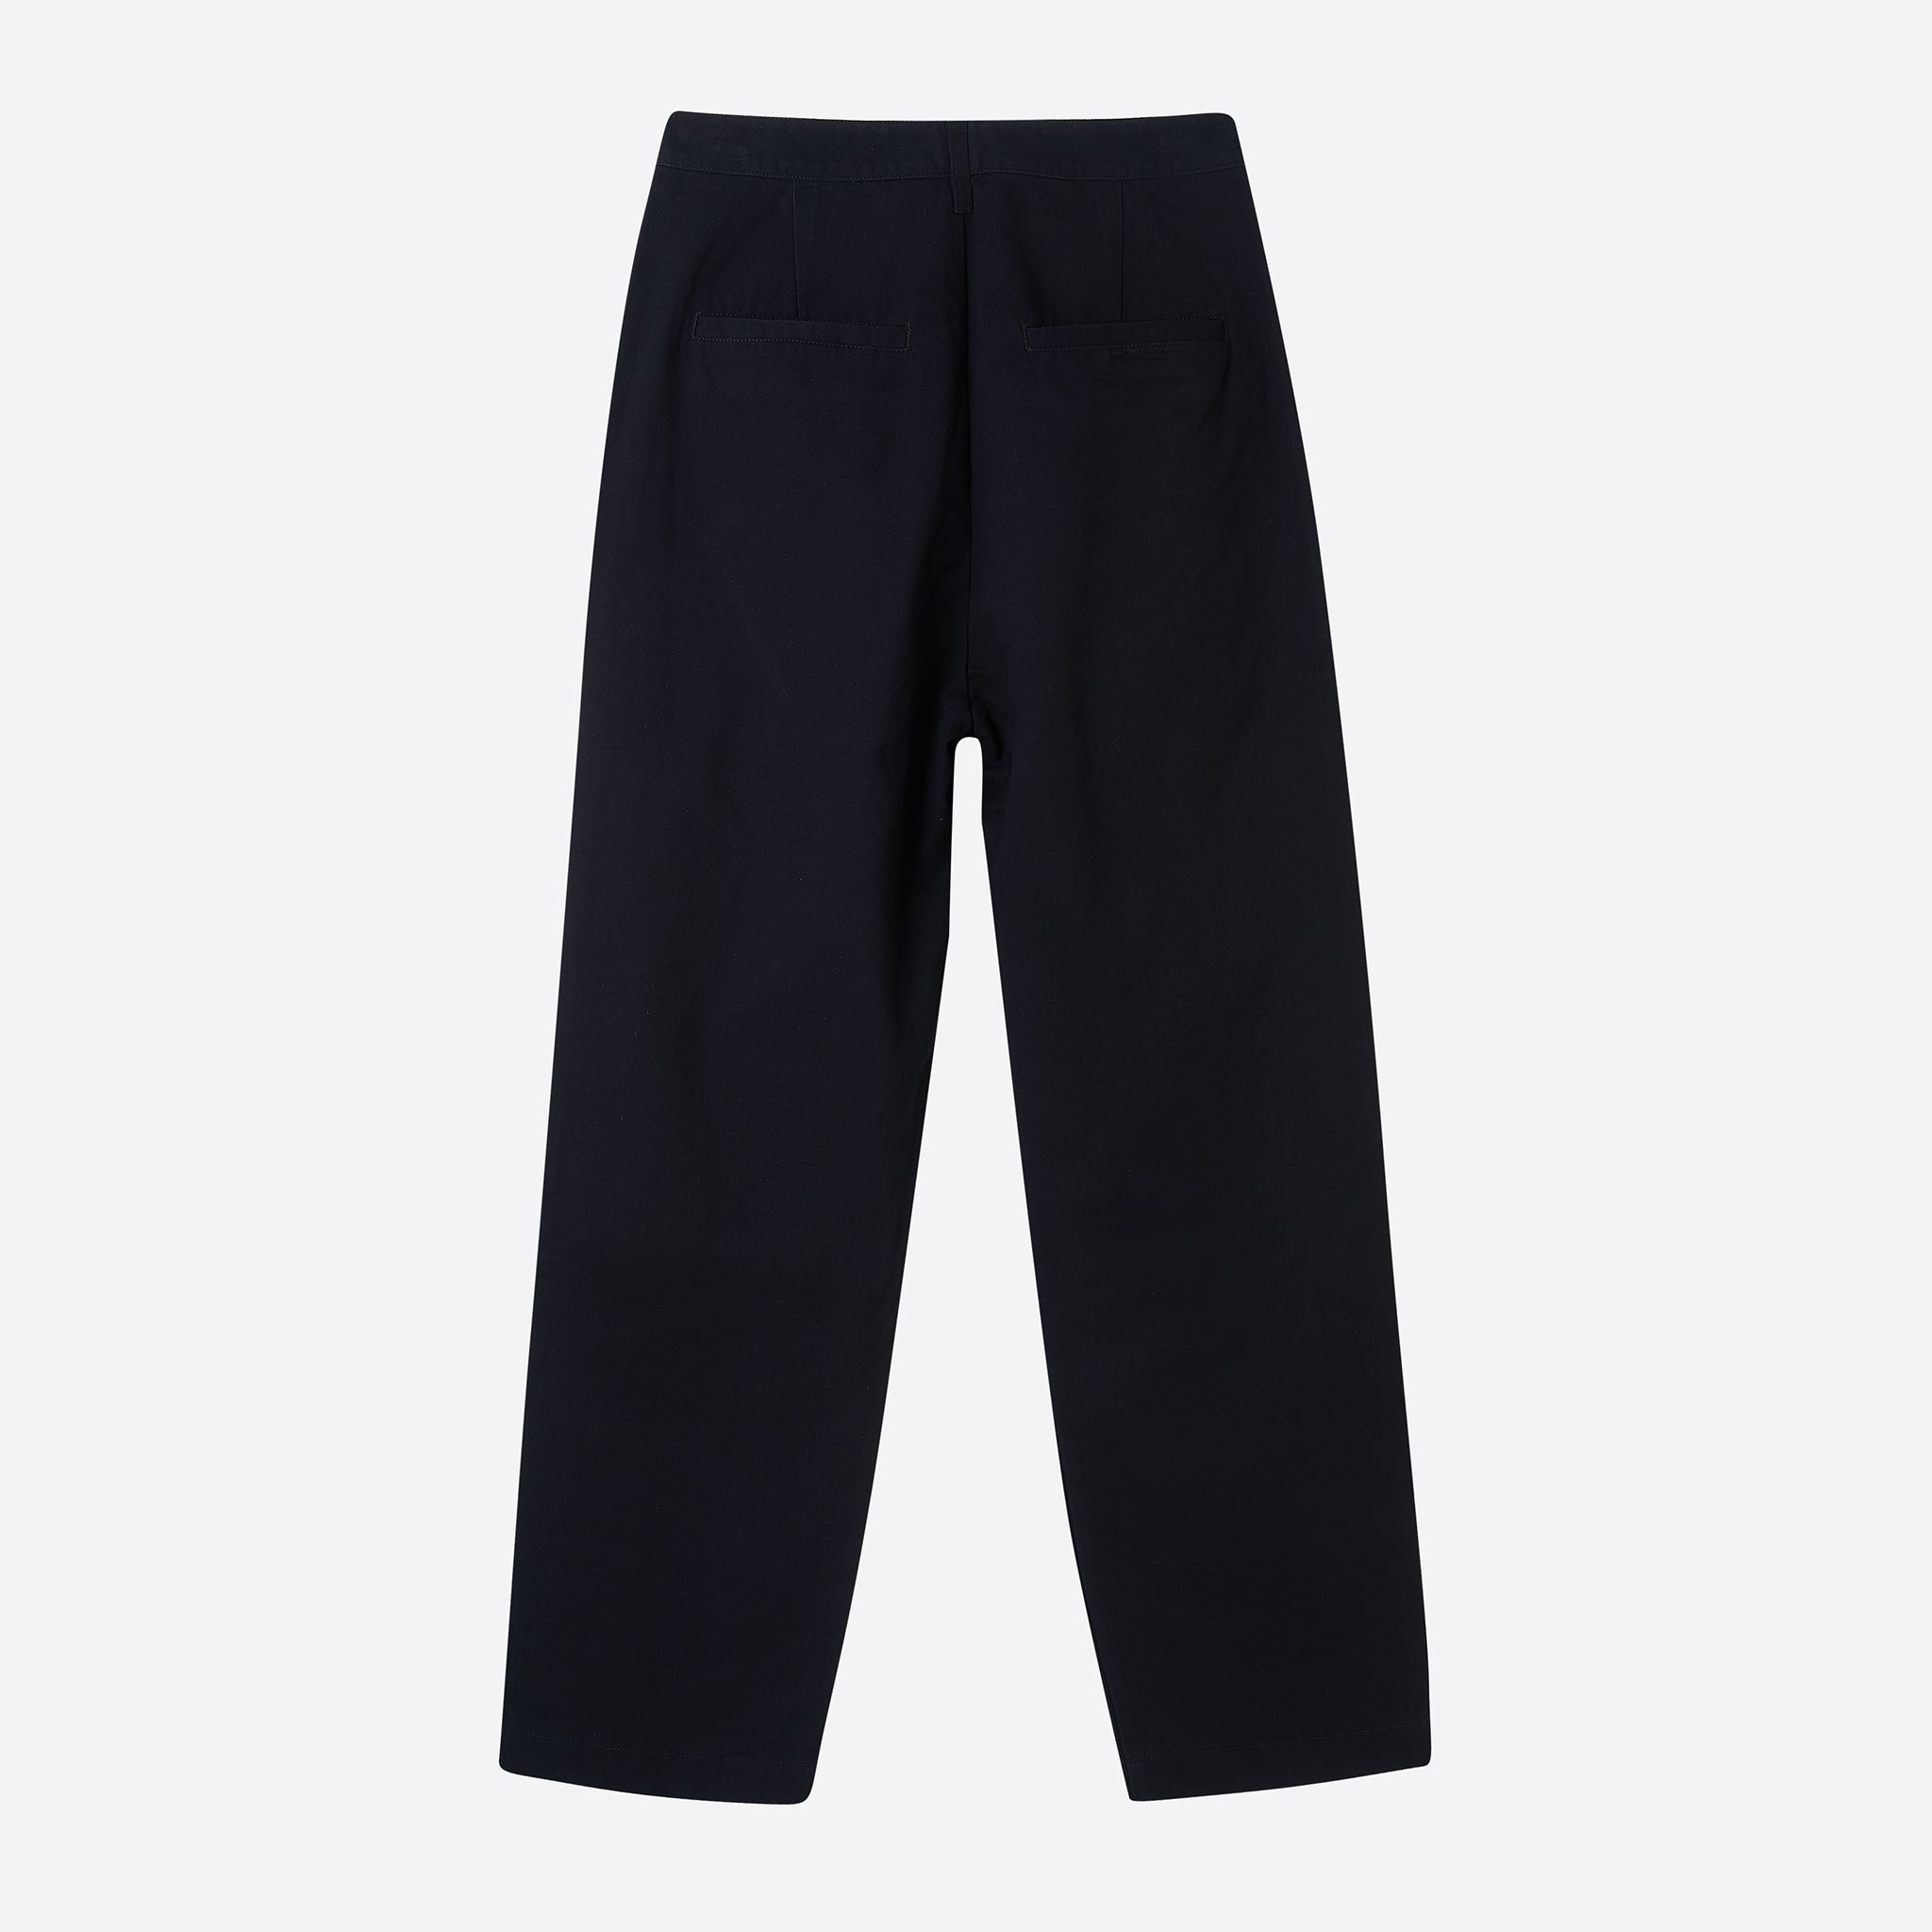 LF Markey Gil Trousers in Midnight